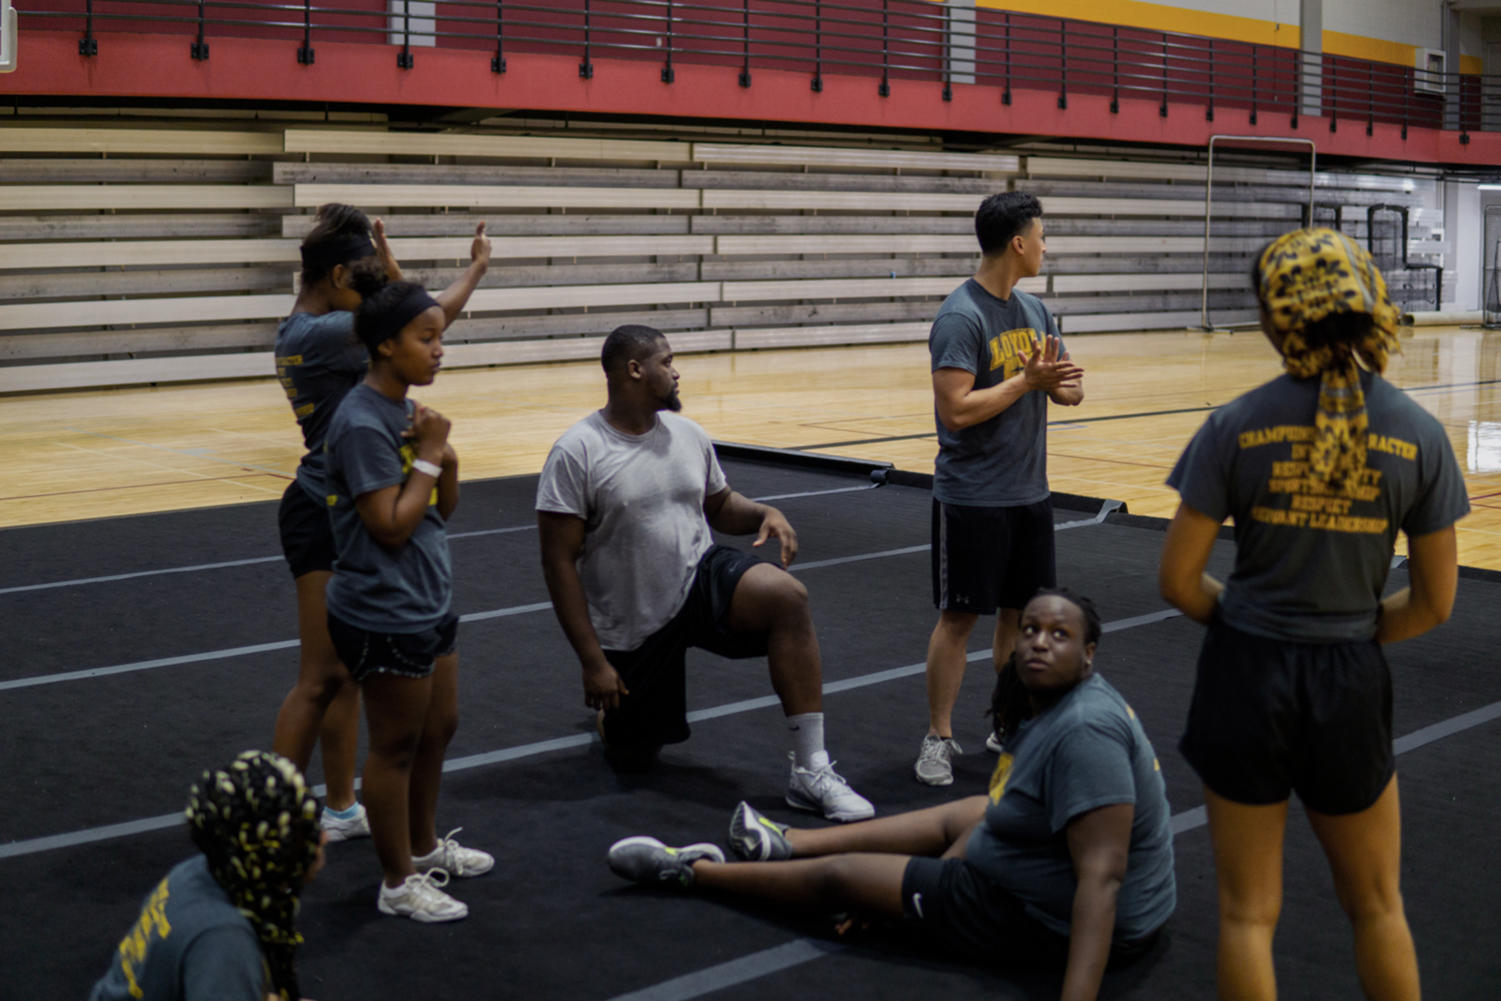 Tri Le, third from the right, looks on as he and members of Loyola's competitive dance team rest between iterations of formations they practice early on Tuesday morning. Photo credit: Jacob Meyer